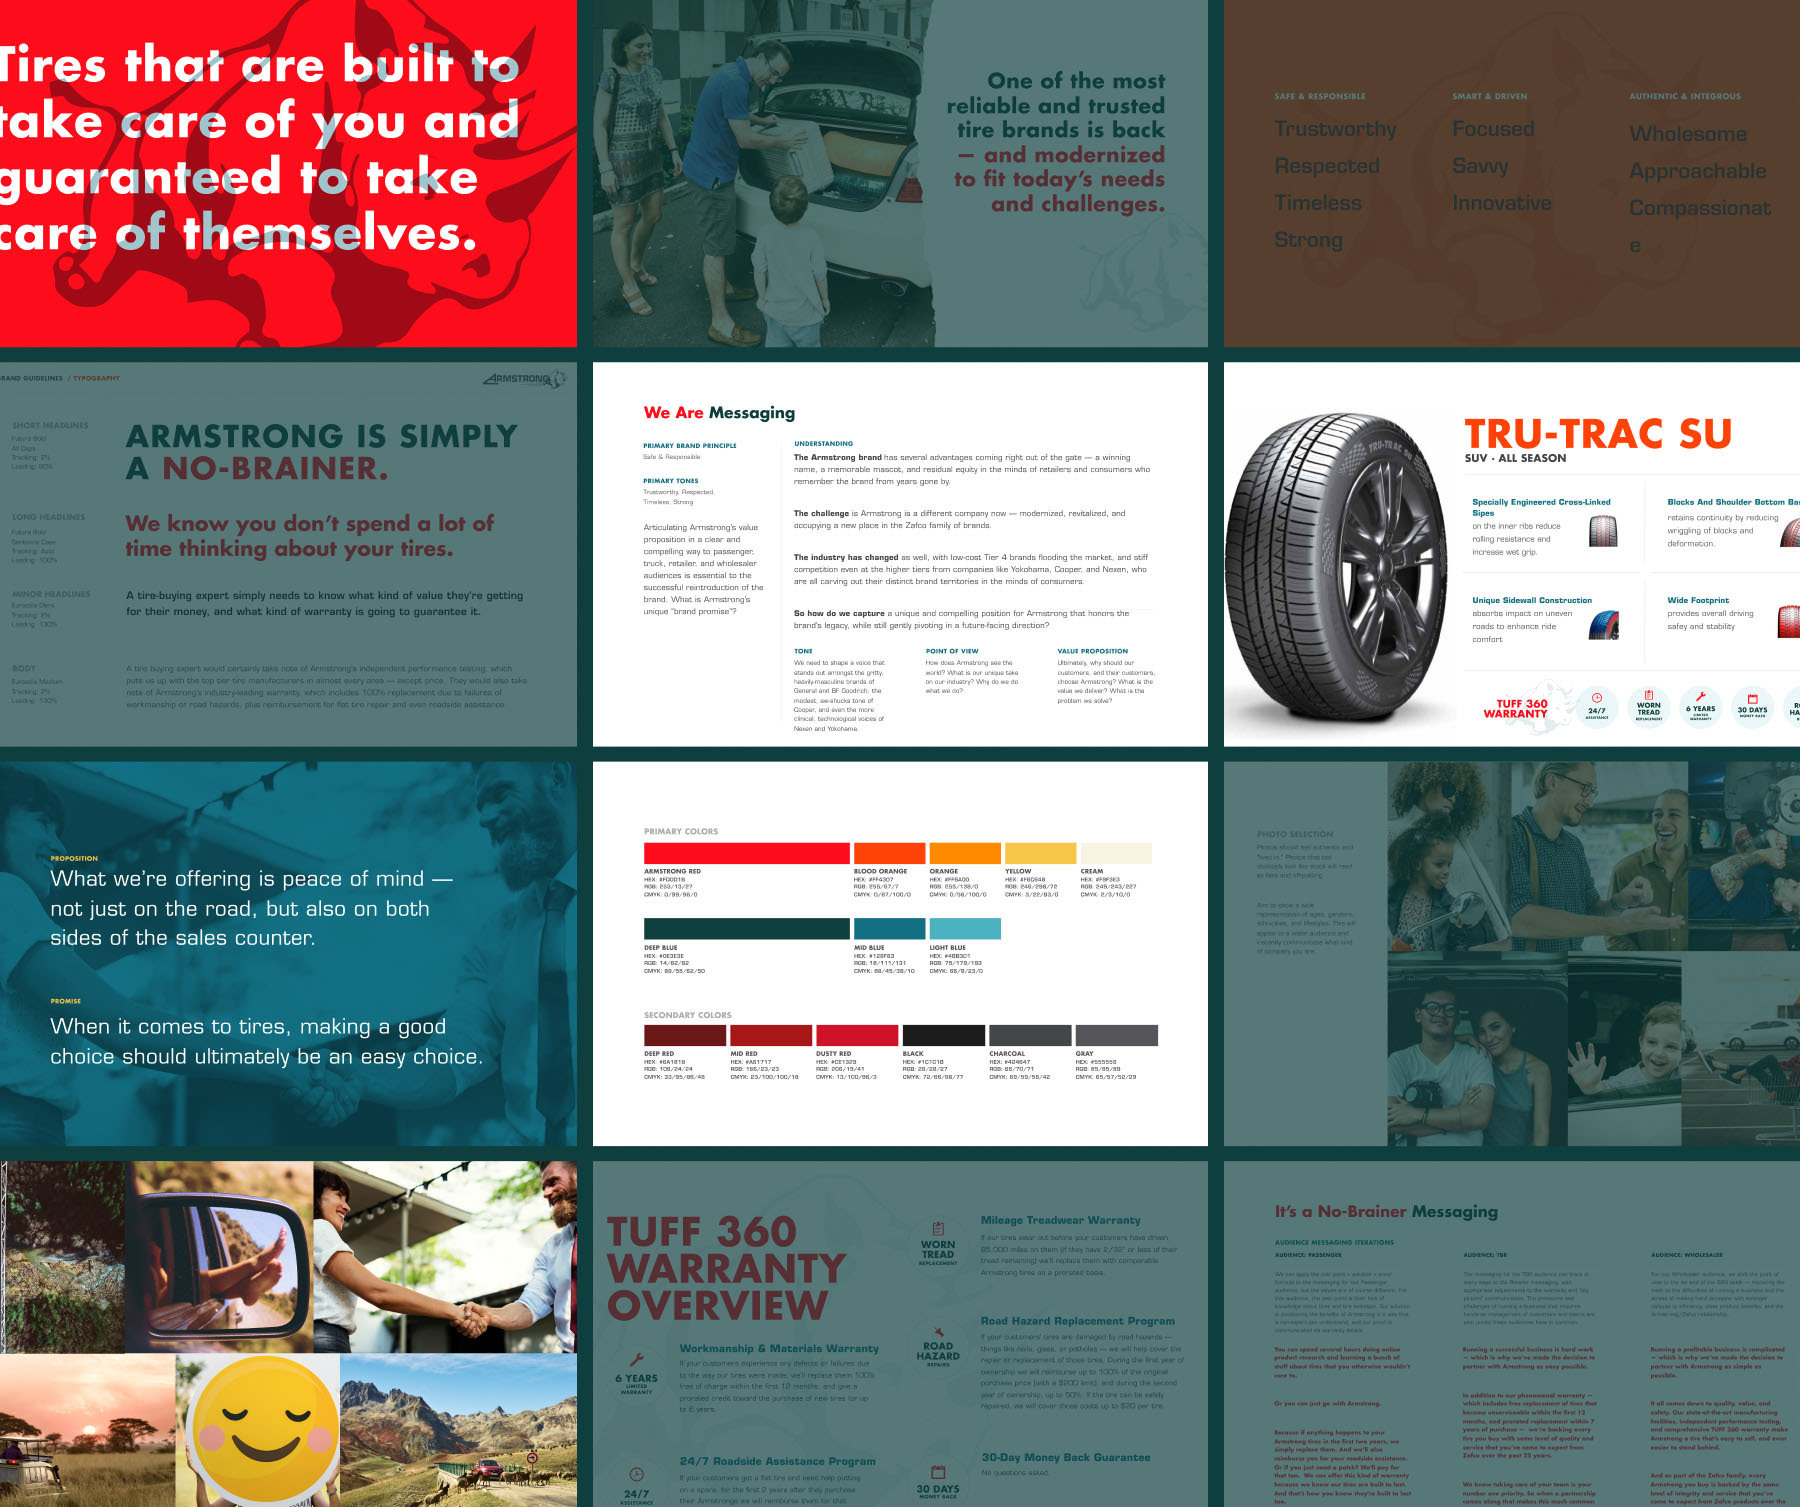 Collage of pages showing the visual direction from Armstrong's brand guide, including their teal and red color palette